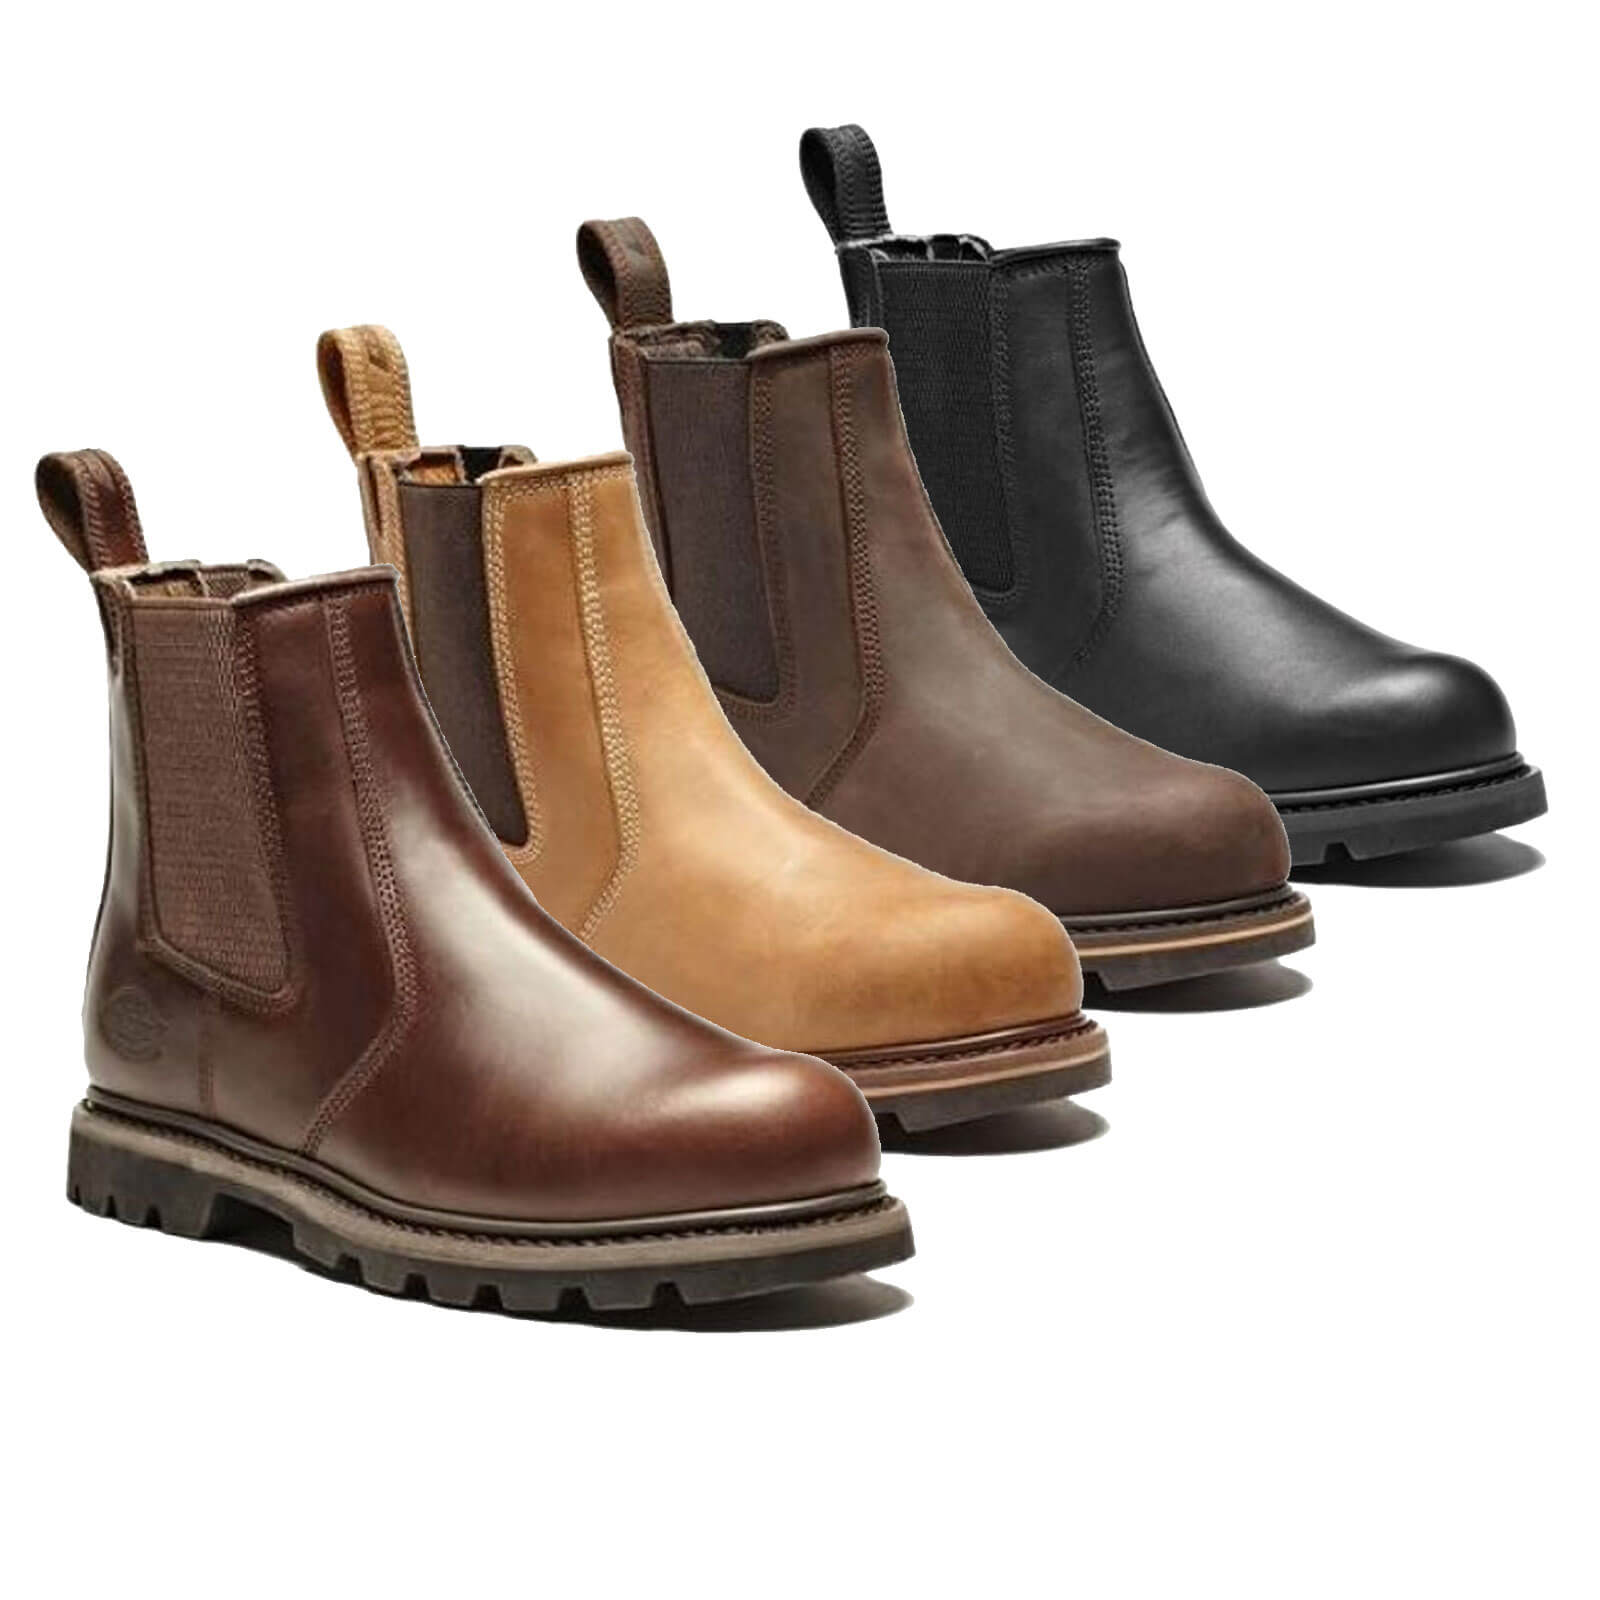 Dickies Mens Fife Dealer Safety Boots | Work Boots